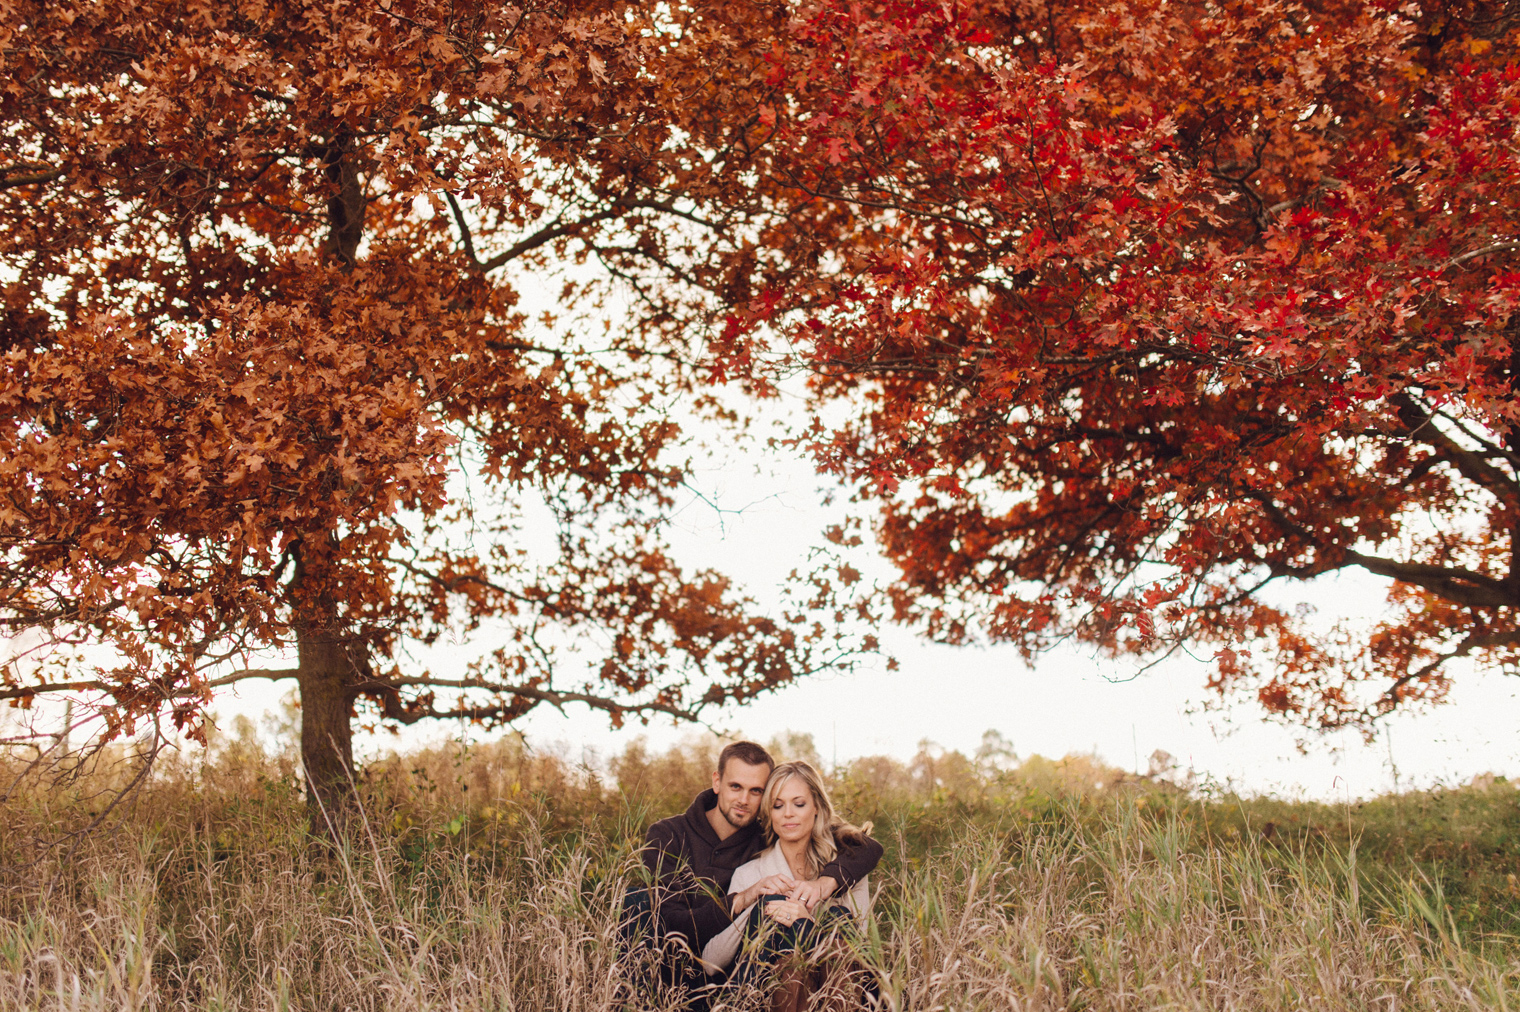 Bright red fall foliage at a fall couples photographyn at the Ann Arbor Botanical Gardens by wedding photographer Heather Jowett.